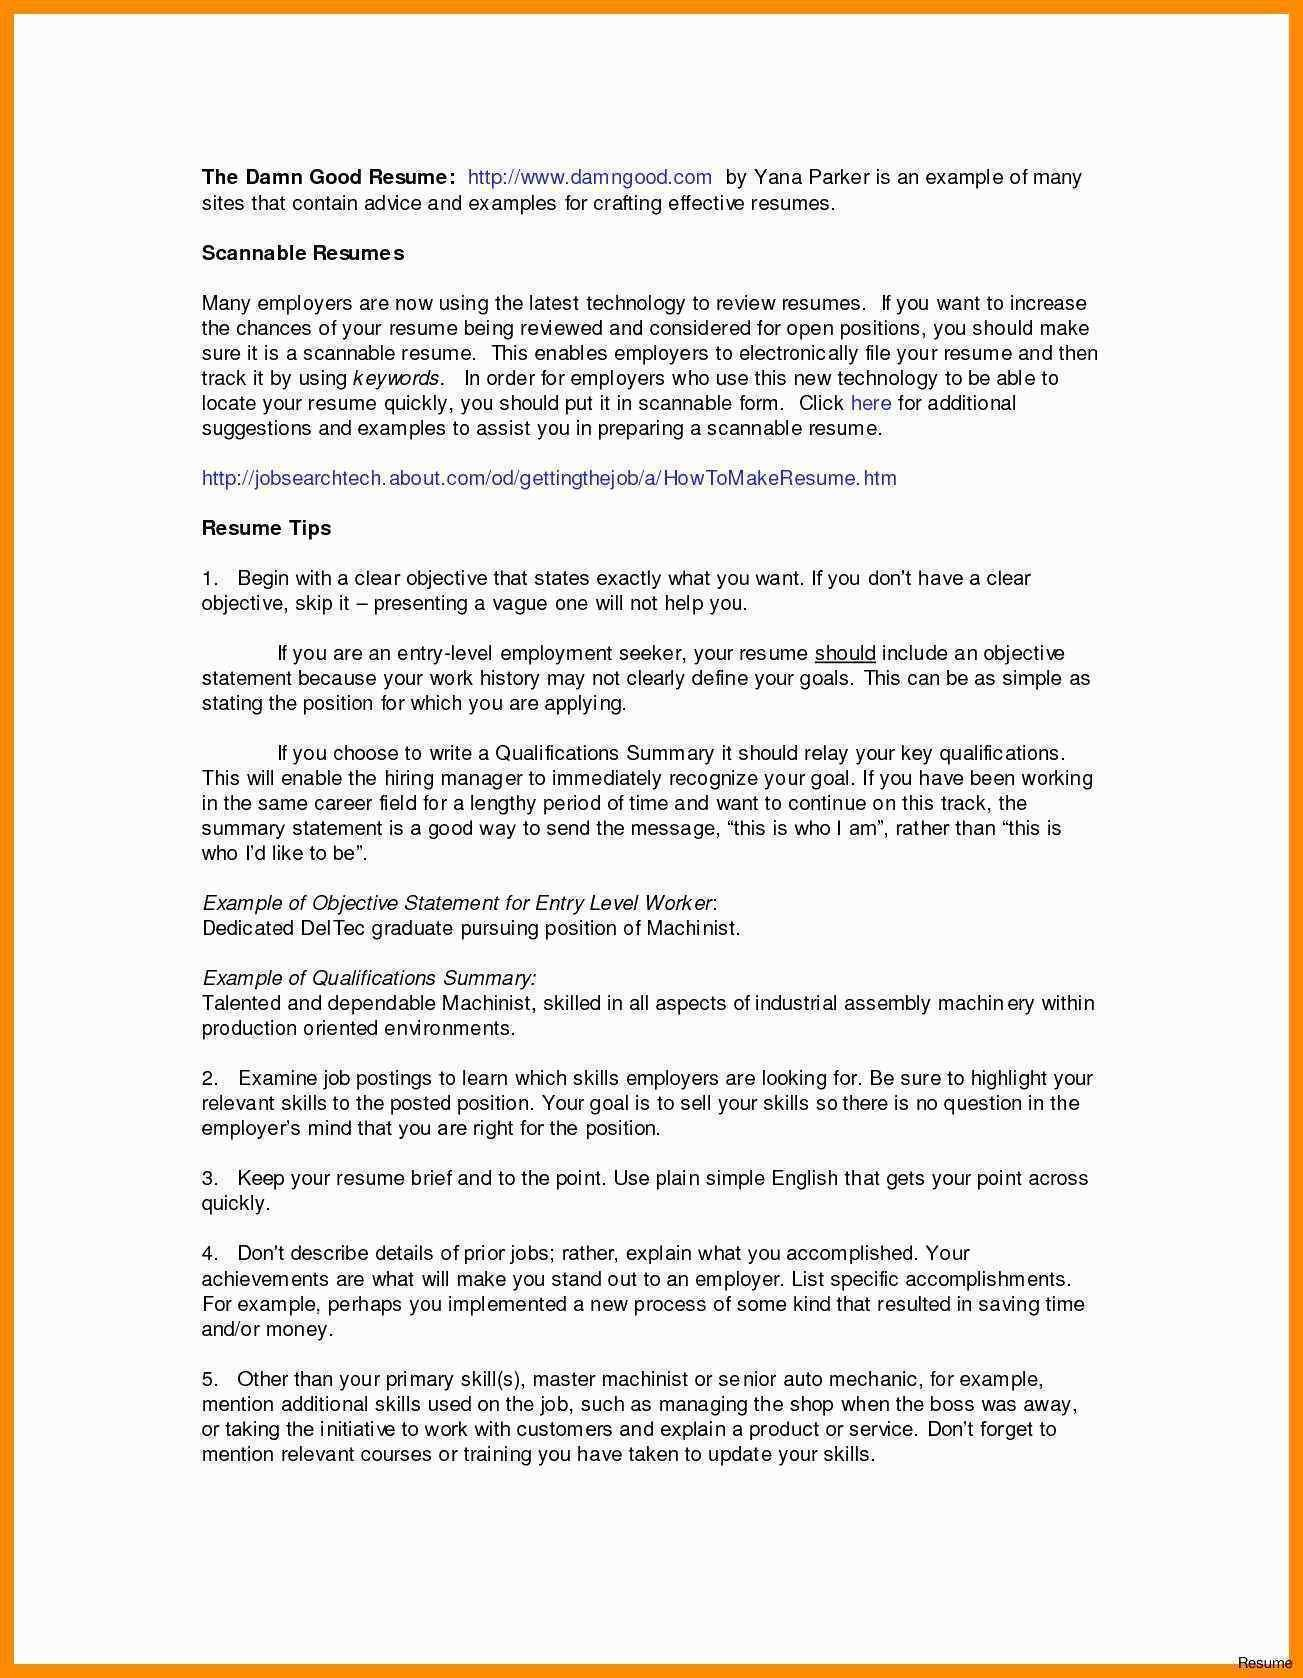 Mergers and Acquisitions Resume Template - Mergers and Inquisitions Resume Template Save Mergers and